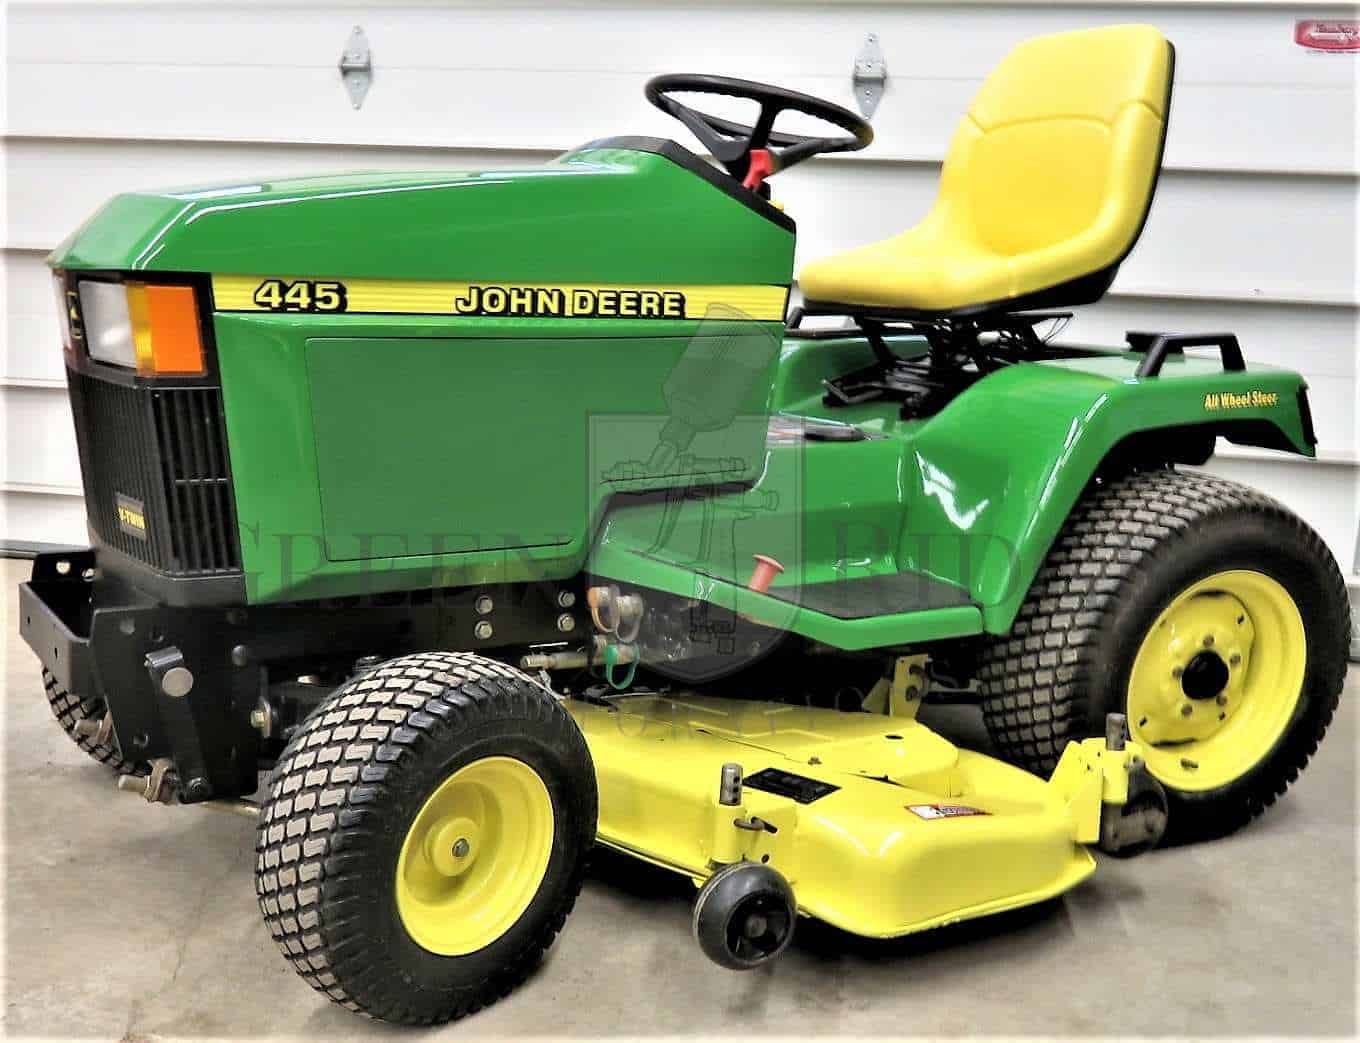 John Deere 445 AWS for sale